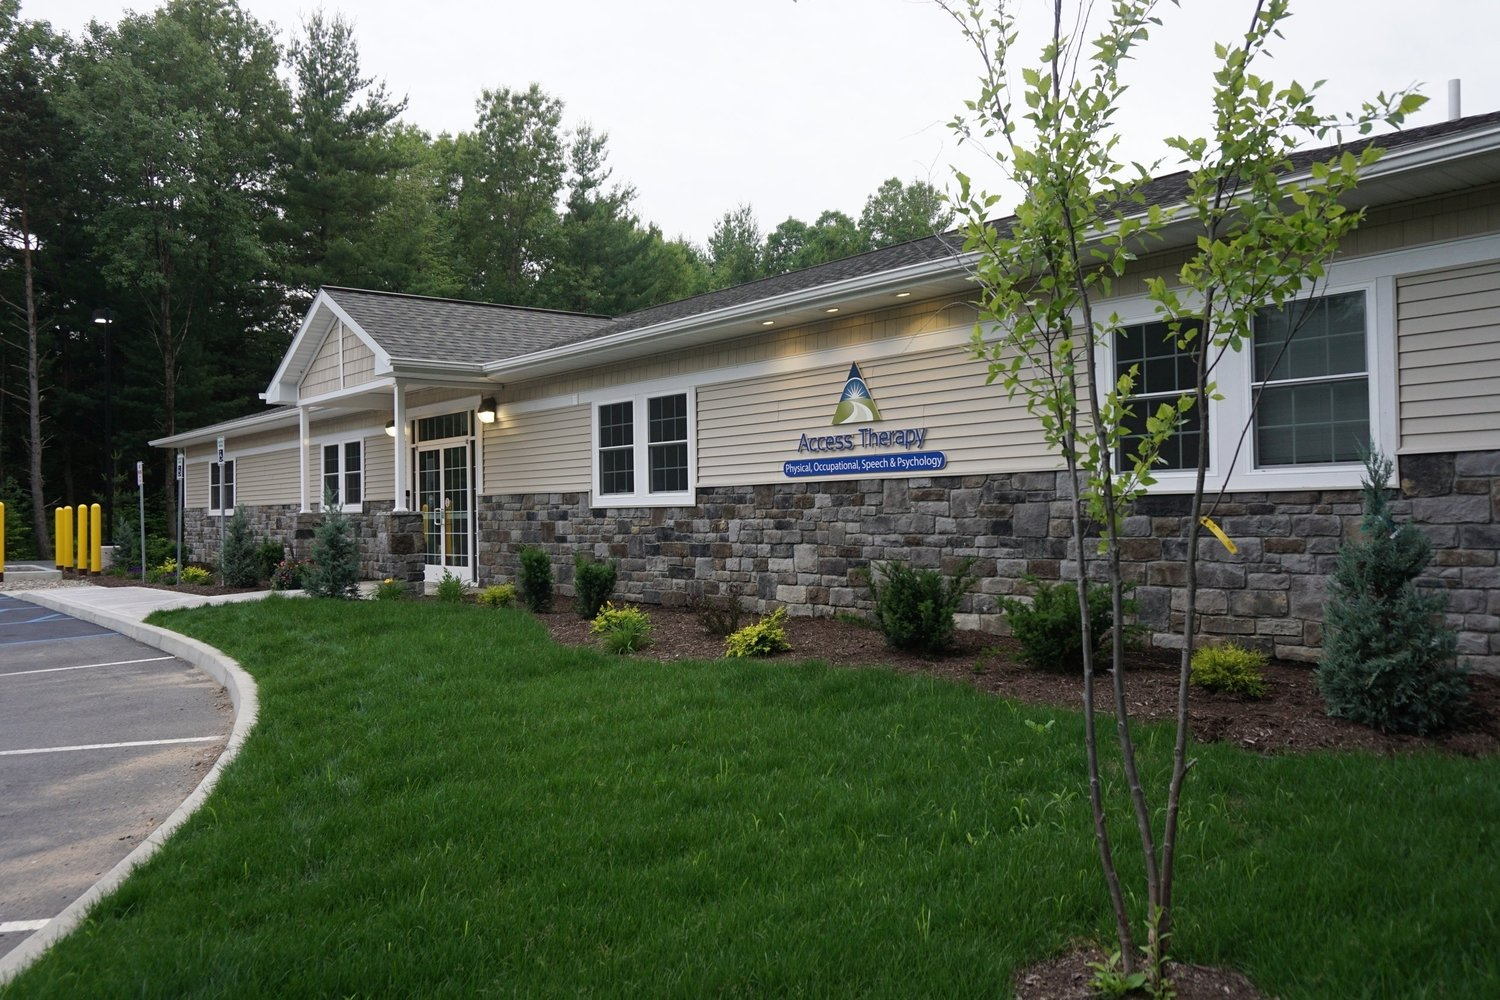 Clifton park physical therapy - Clifton Park Physical Therapy 15